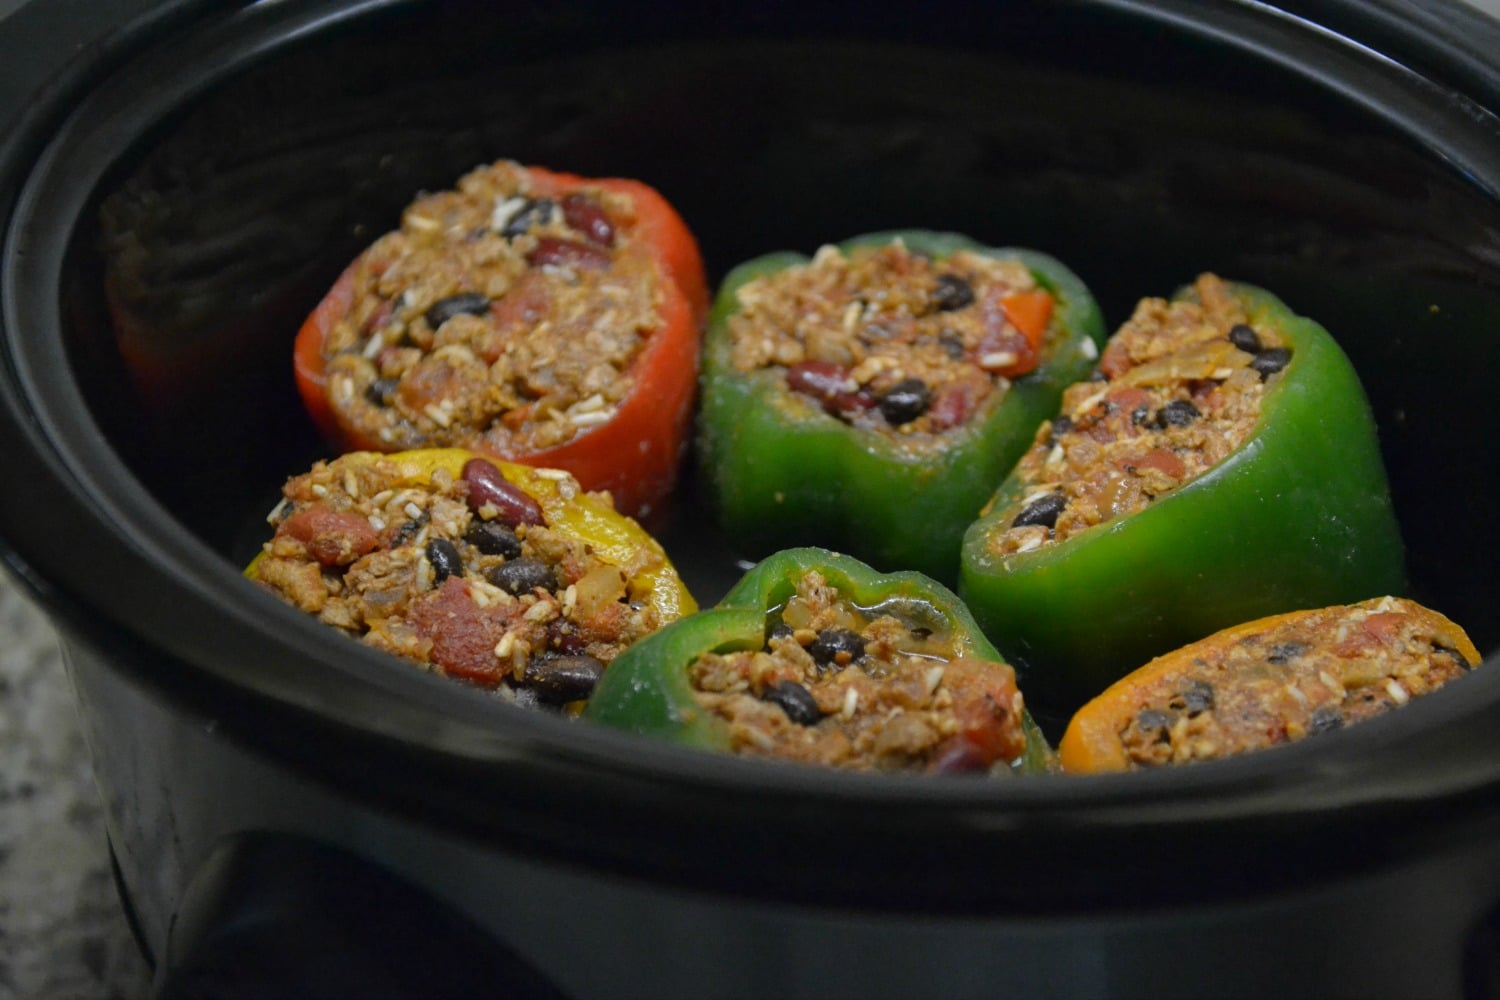 Cook stuffed peppers in a crock pot for 3-4 hours, until the peppers are tender.